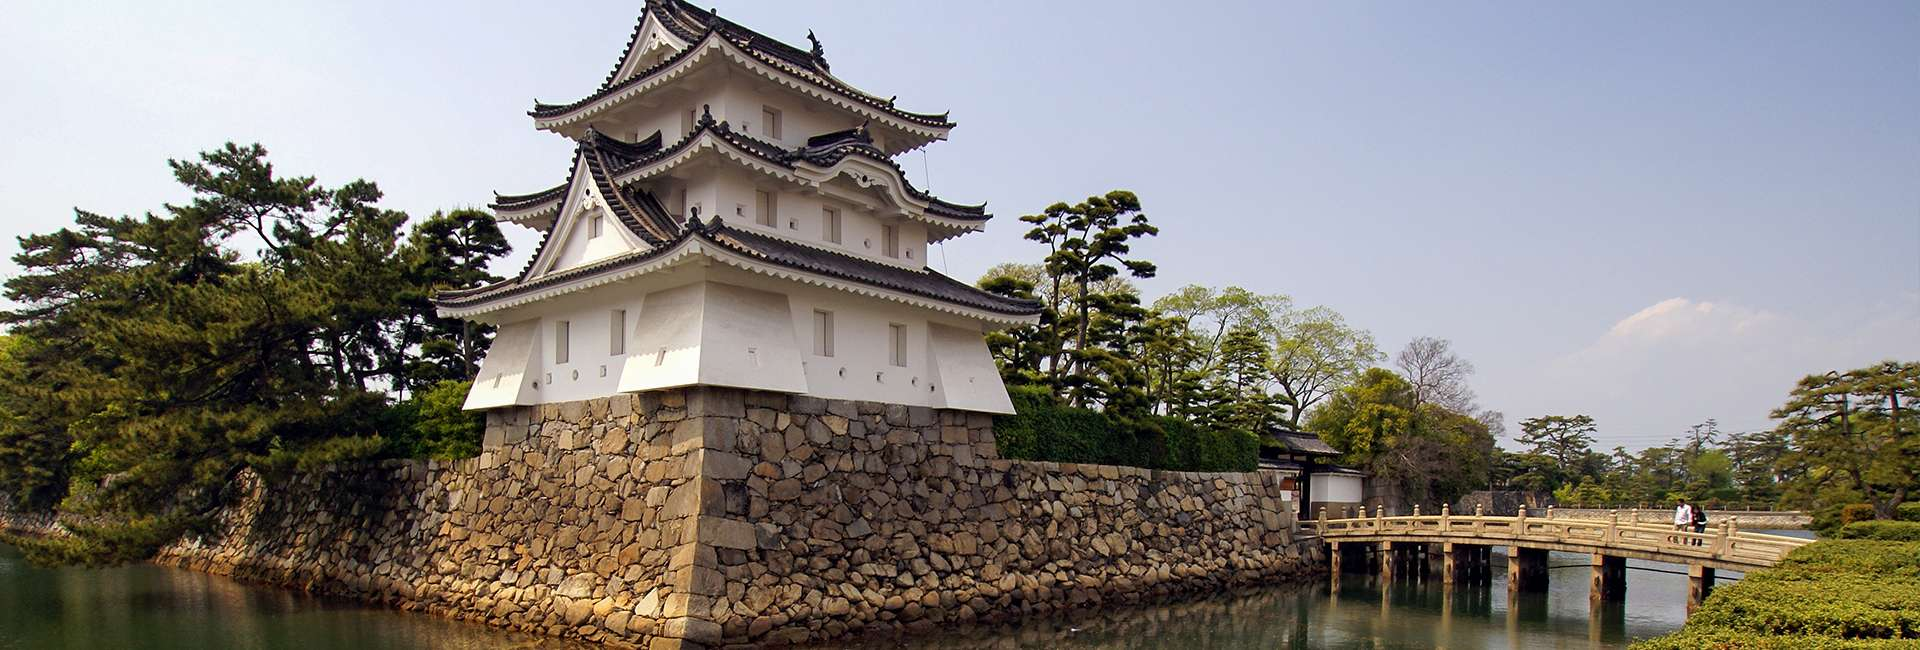 Takamatsu in Japan